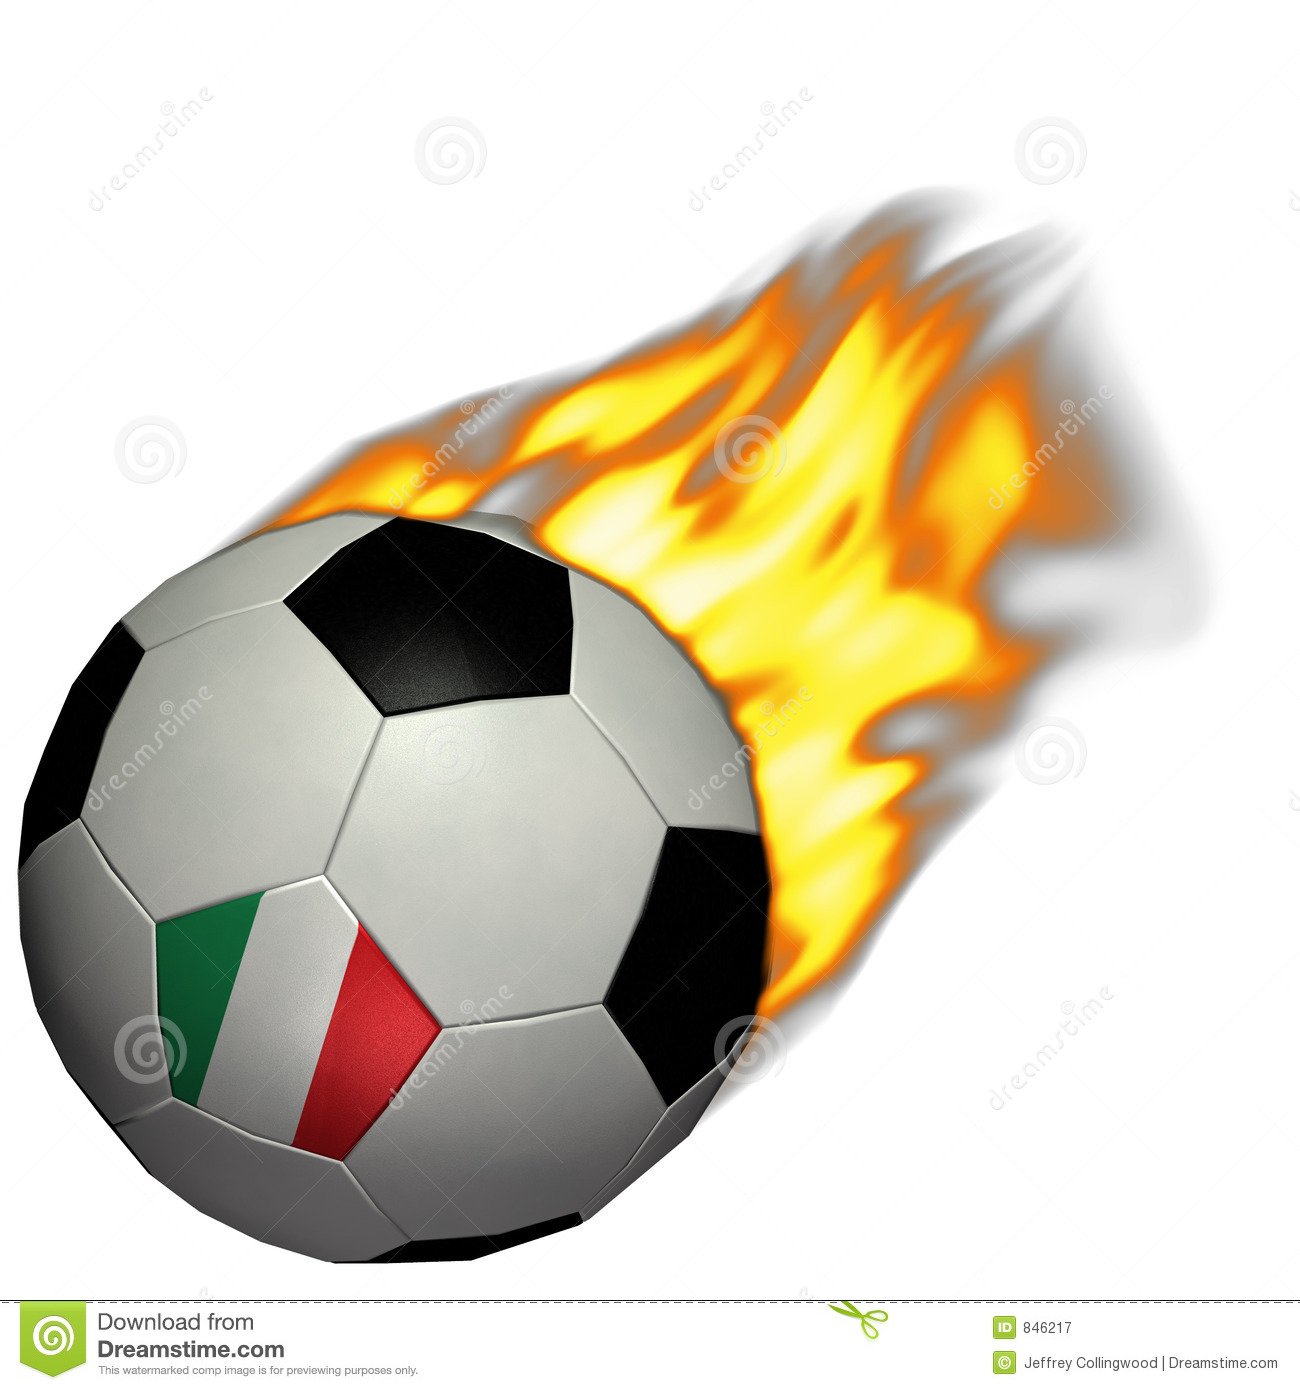 World Cup Soccer/Football - Italy on Fire